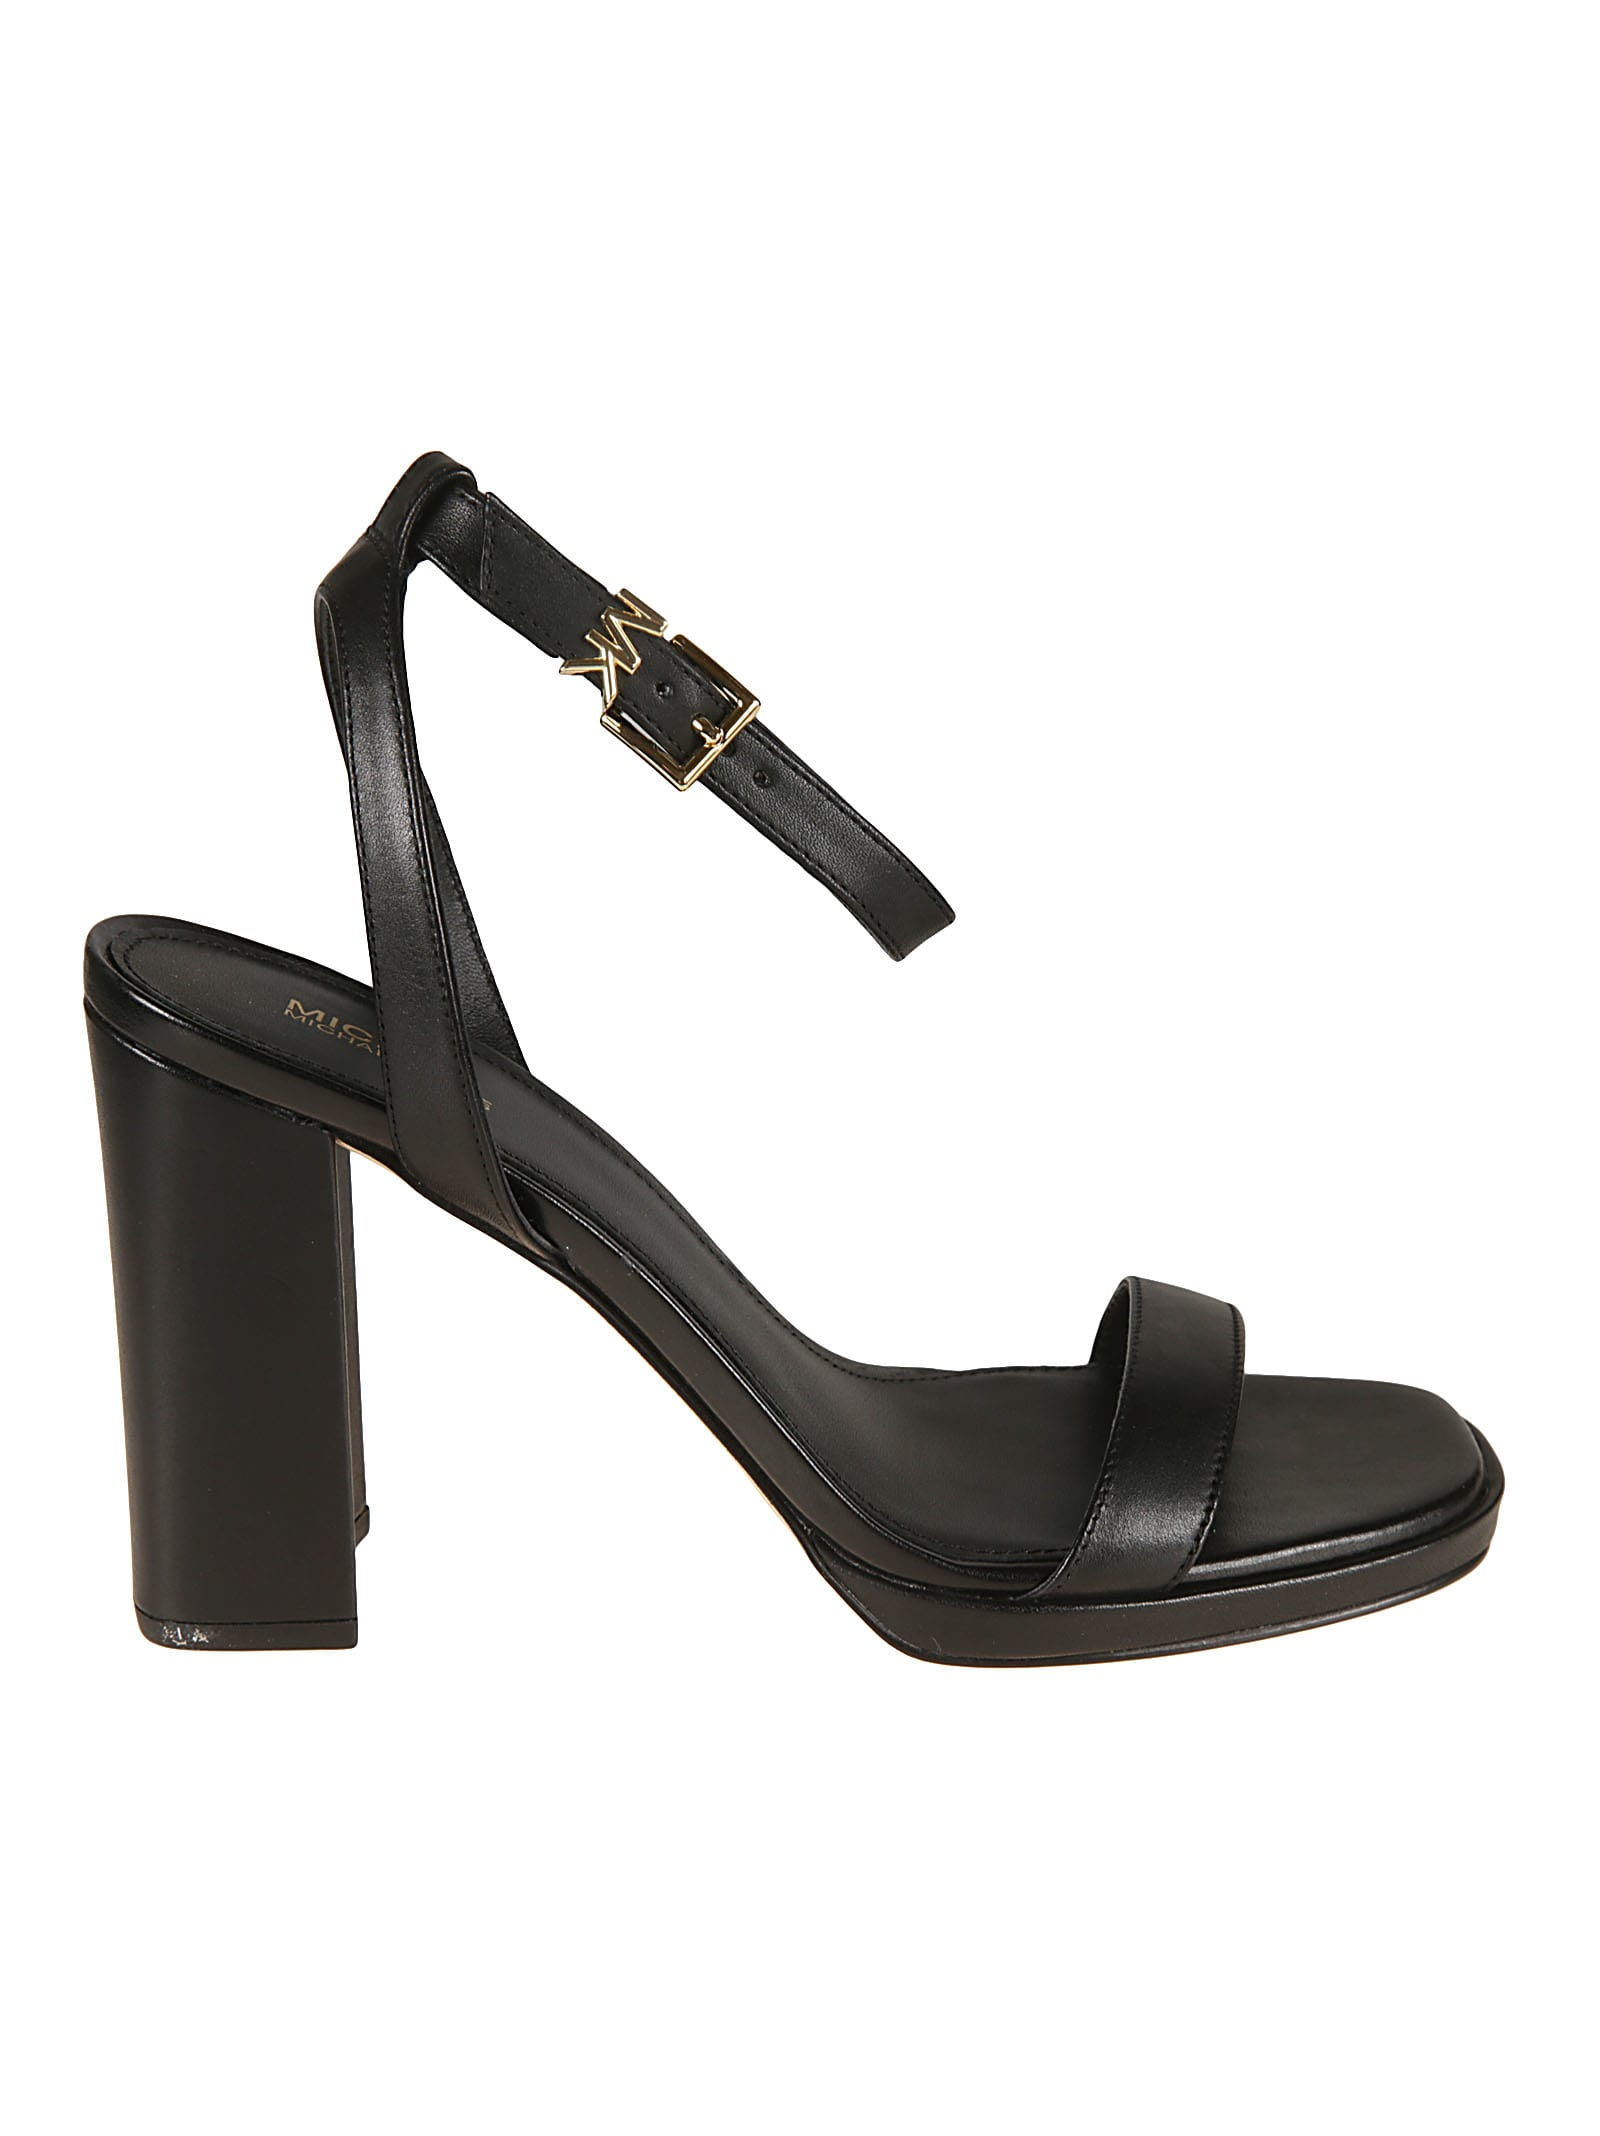 Buy Michael Kors Angela Ankle Strap Leather Sandals online, shop Michael Kors shoes with free shipping